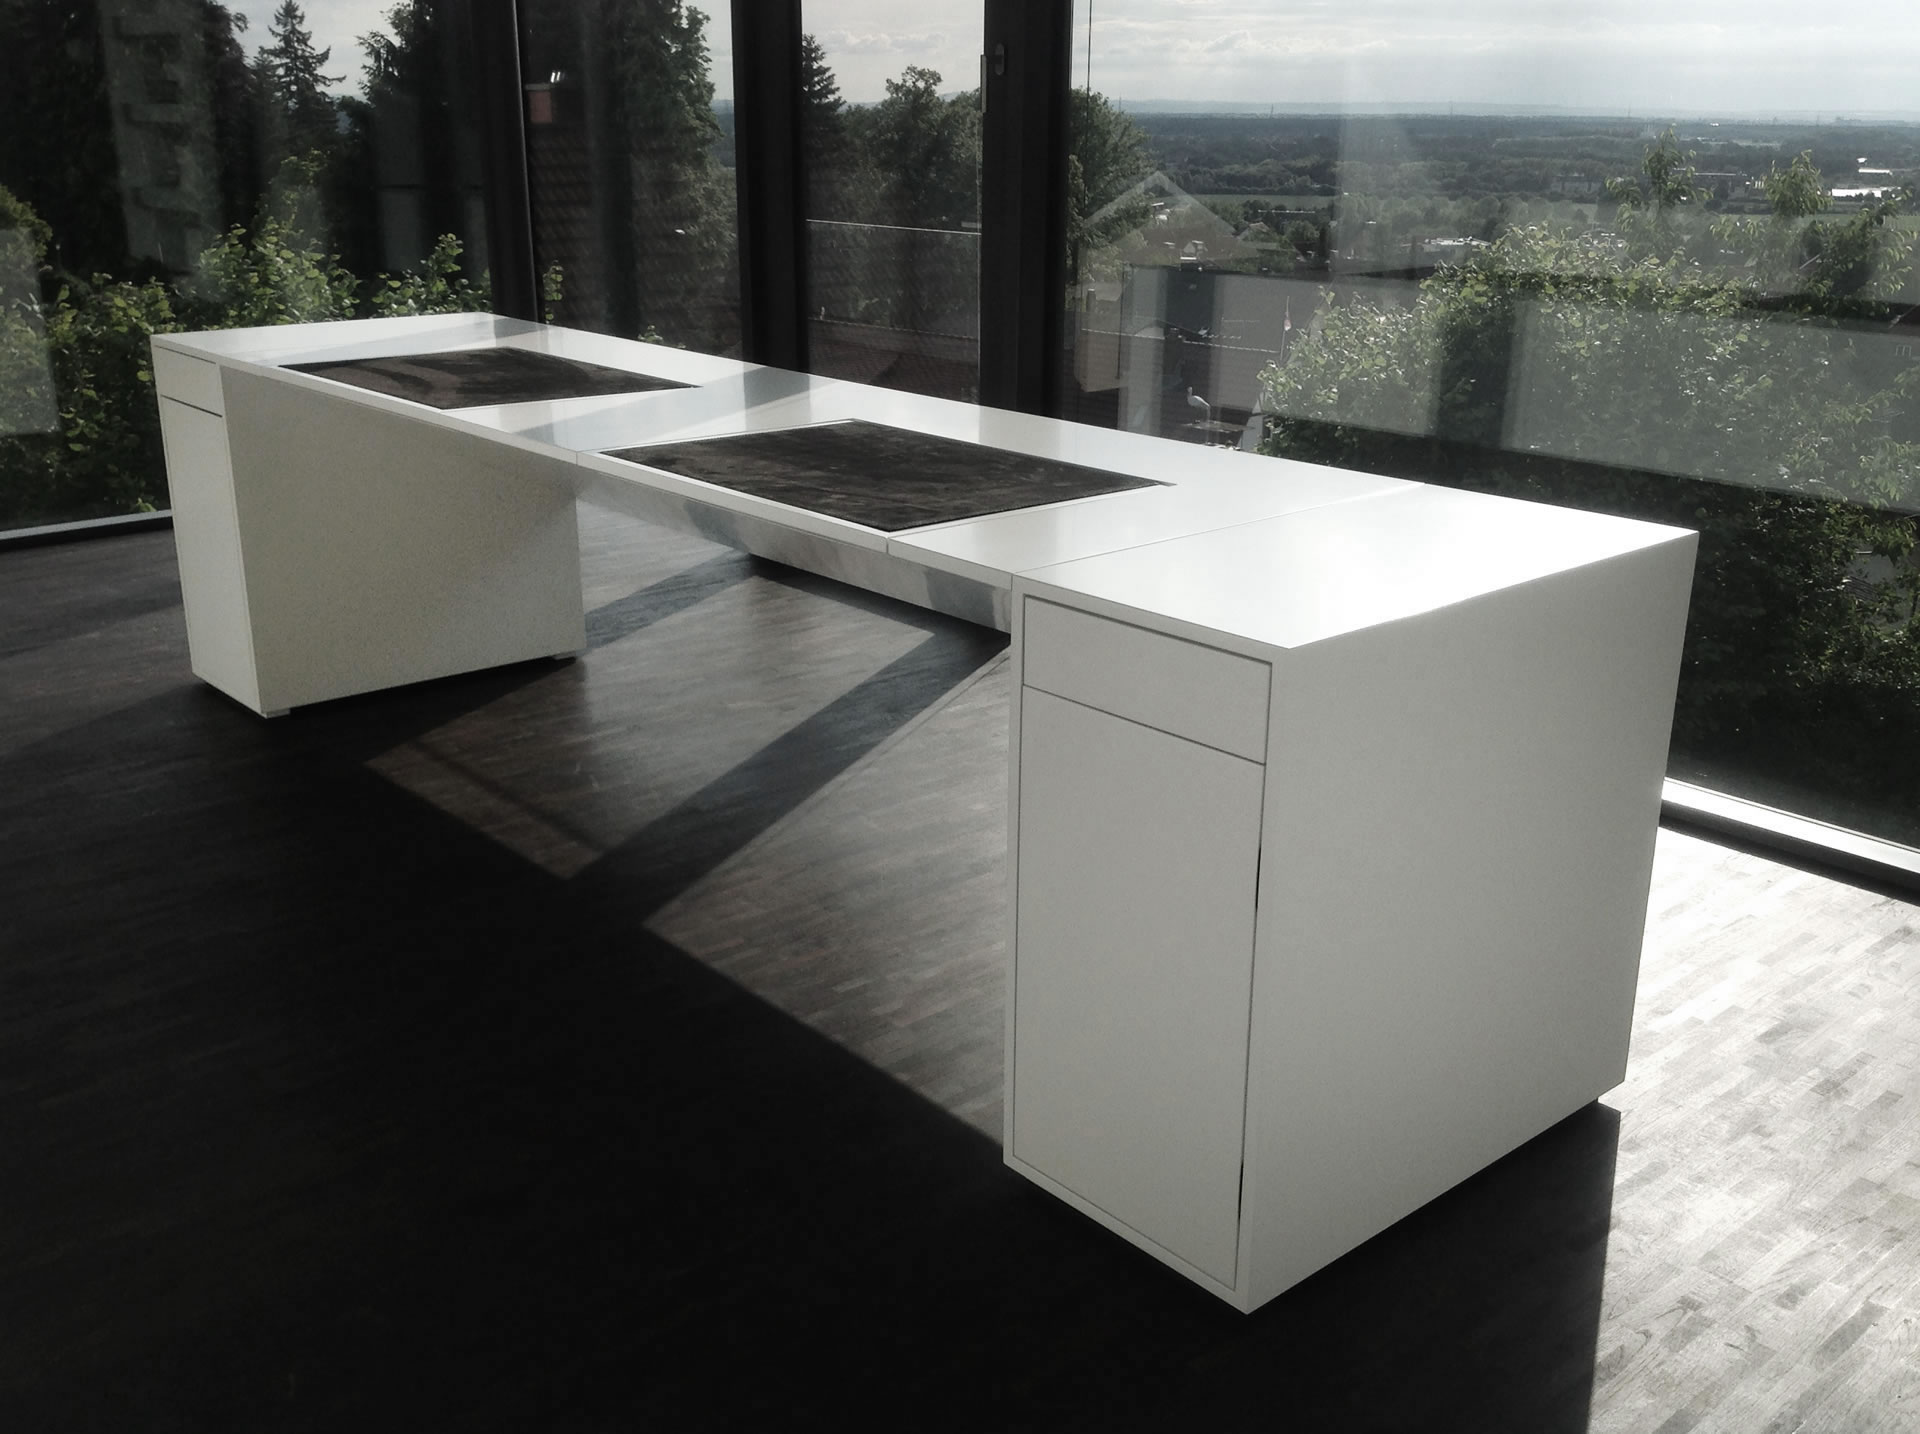 villa m blierung in frankfurt a m rechteck. Black Bedroom Furniture Sets. Home Design Ideas